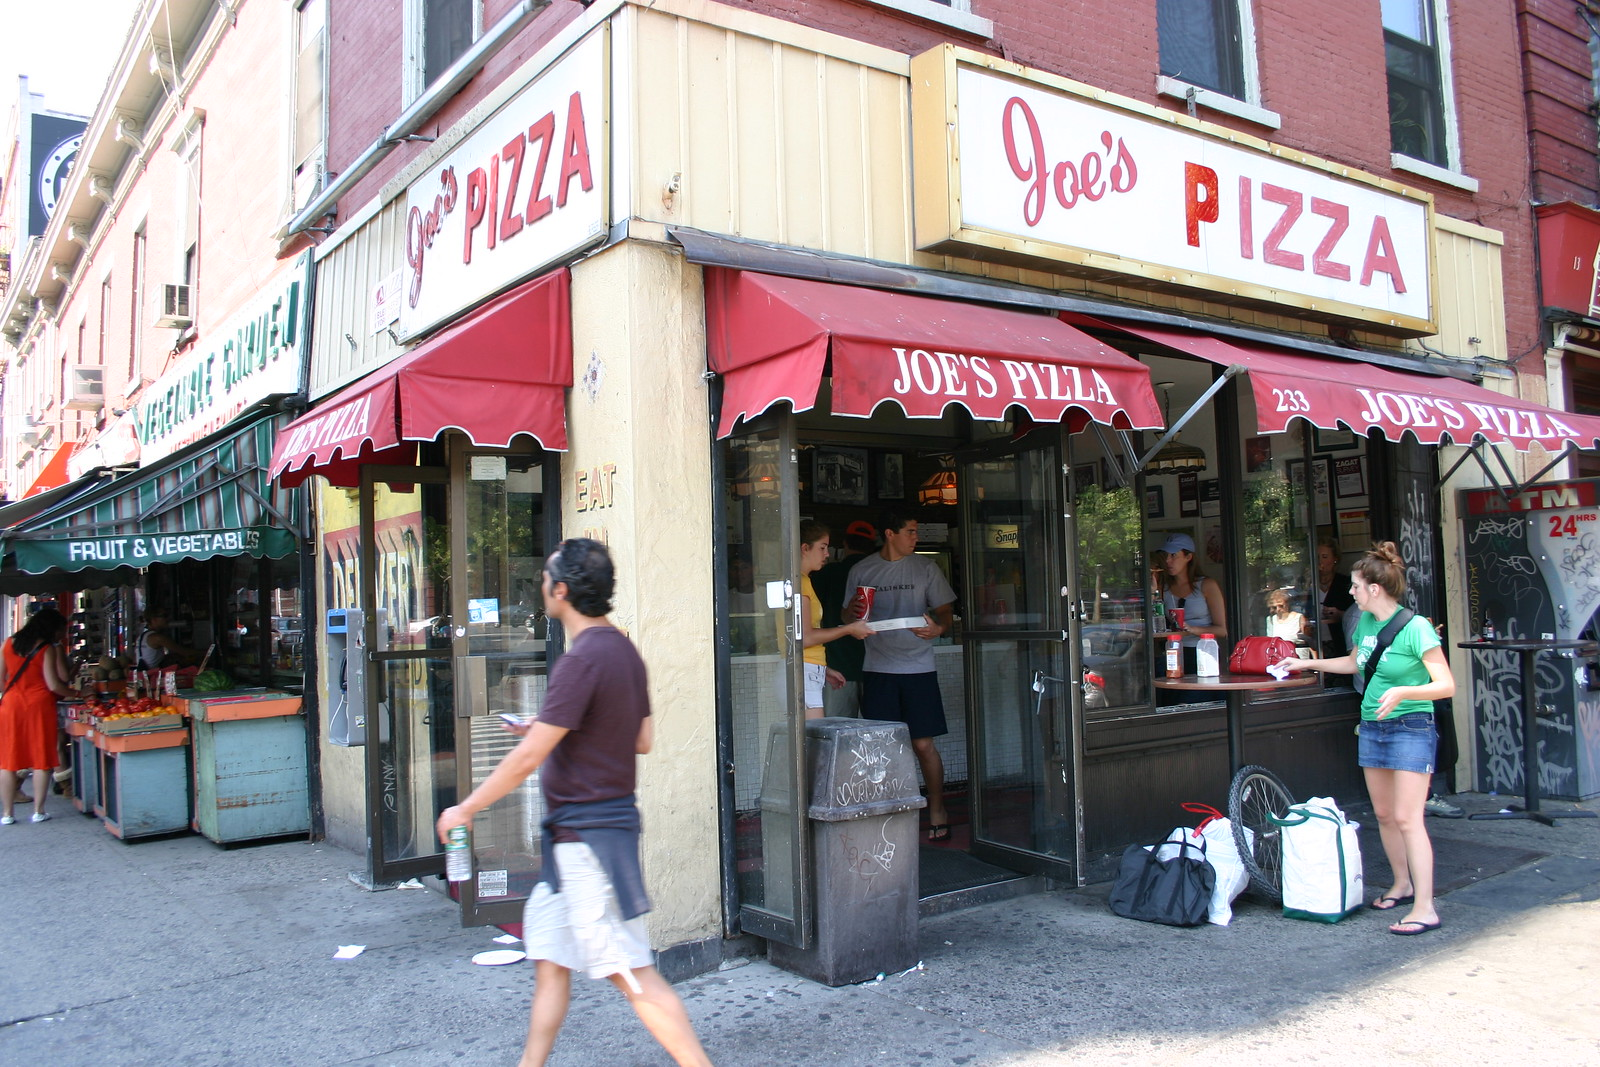 The Joe's Pizza from Spider-Man 2